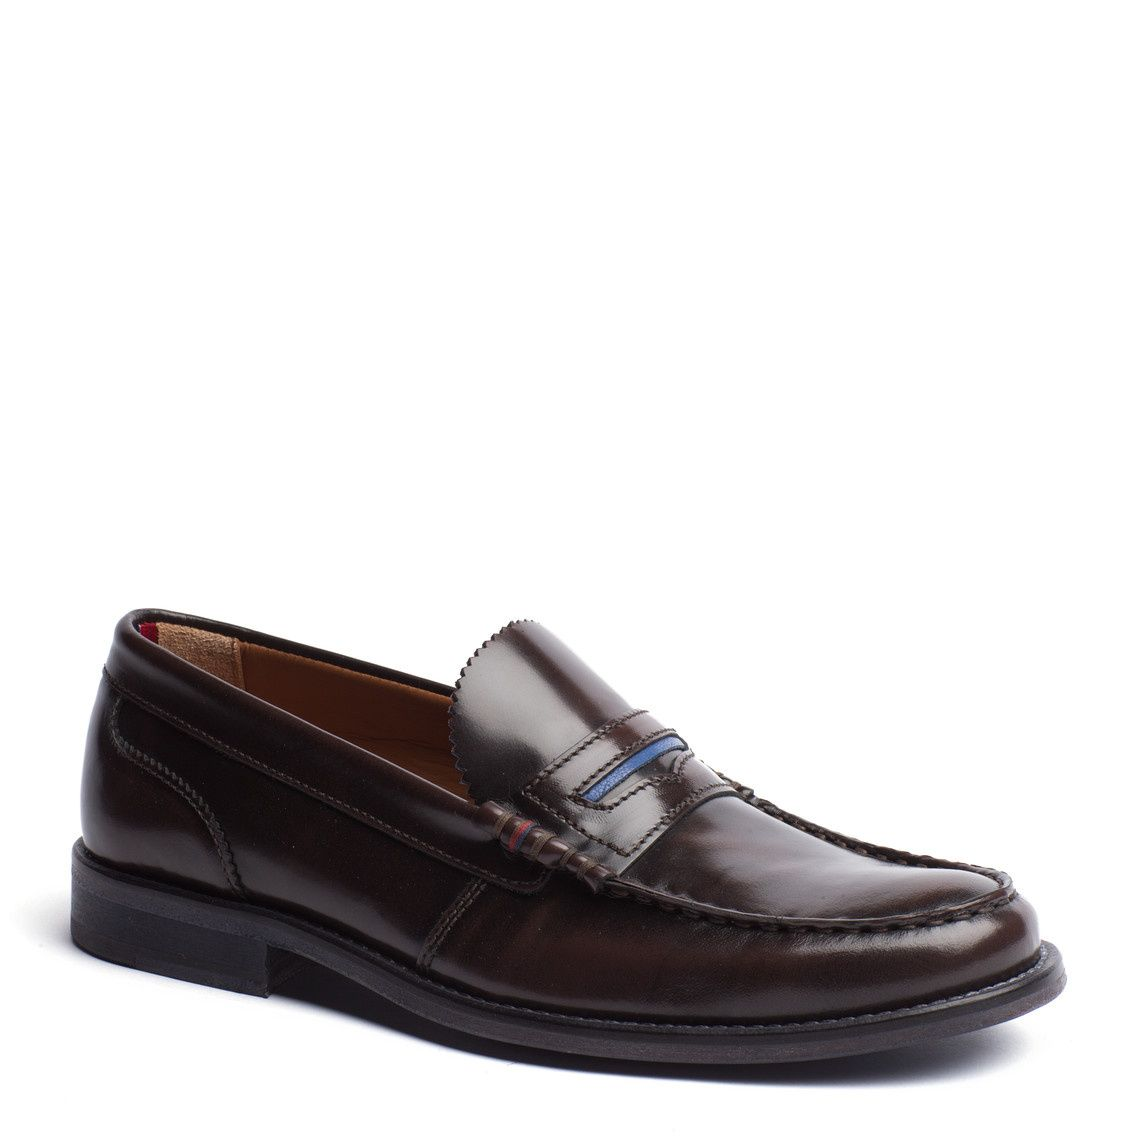 Tommy Hilfiger Holiday Looks 2013 Andre Loafer #tommyhilfiger #menswear #Holidays2013